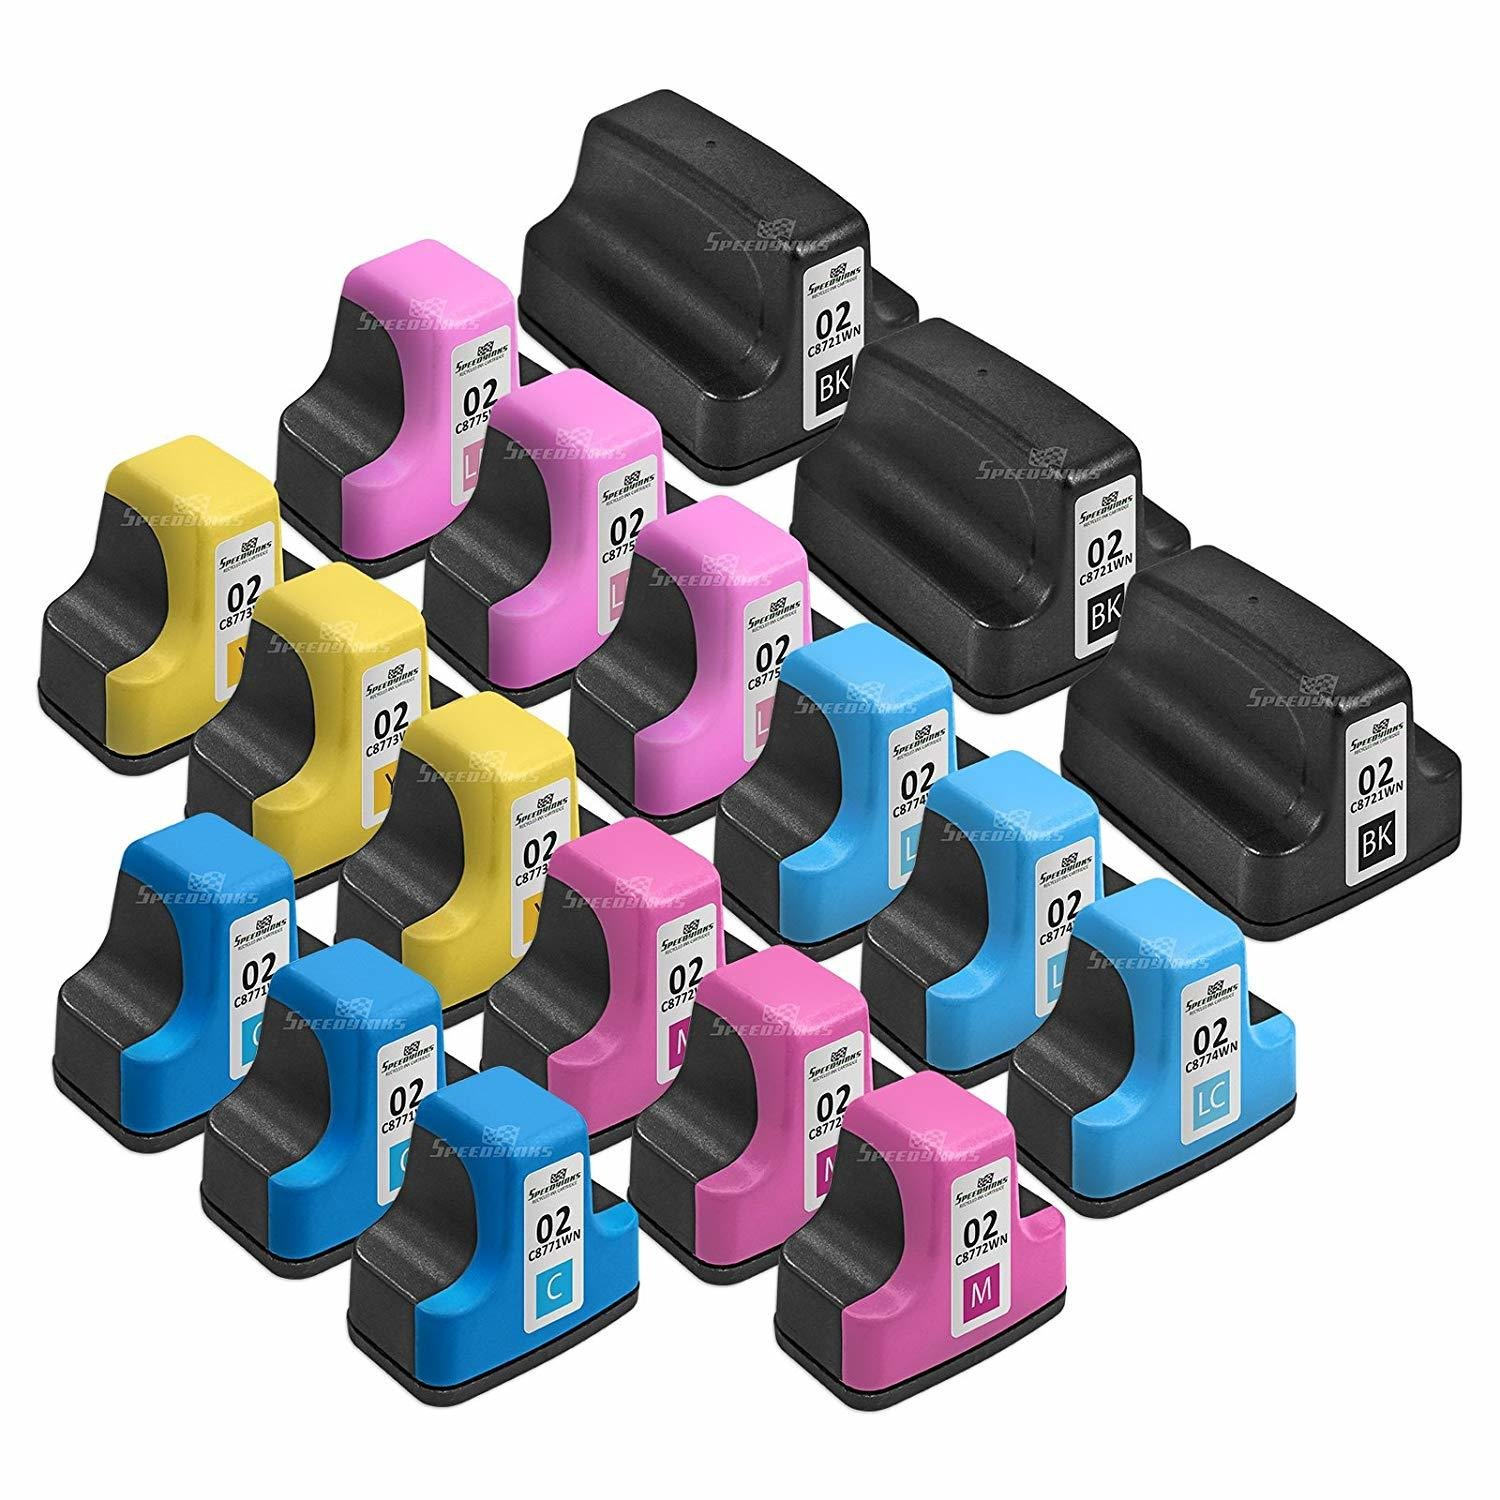 Now Speedy Inks - 18PK Remanufactured Replacement for HP 02: 3 Black C8721WN, 3ea Cyan C8771WN, Magenta C8772WN, Yellow C8773WN, Lt Cyan C8774WN, Lt Magenta C8775WN Ink Cartridge Set